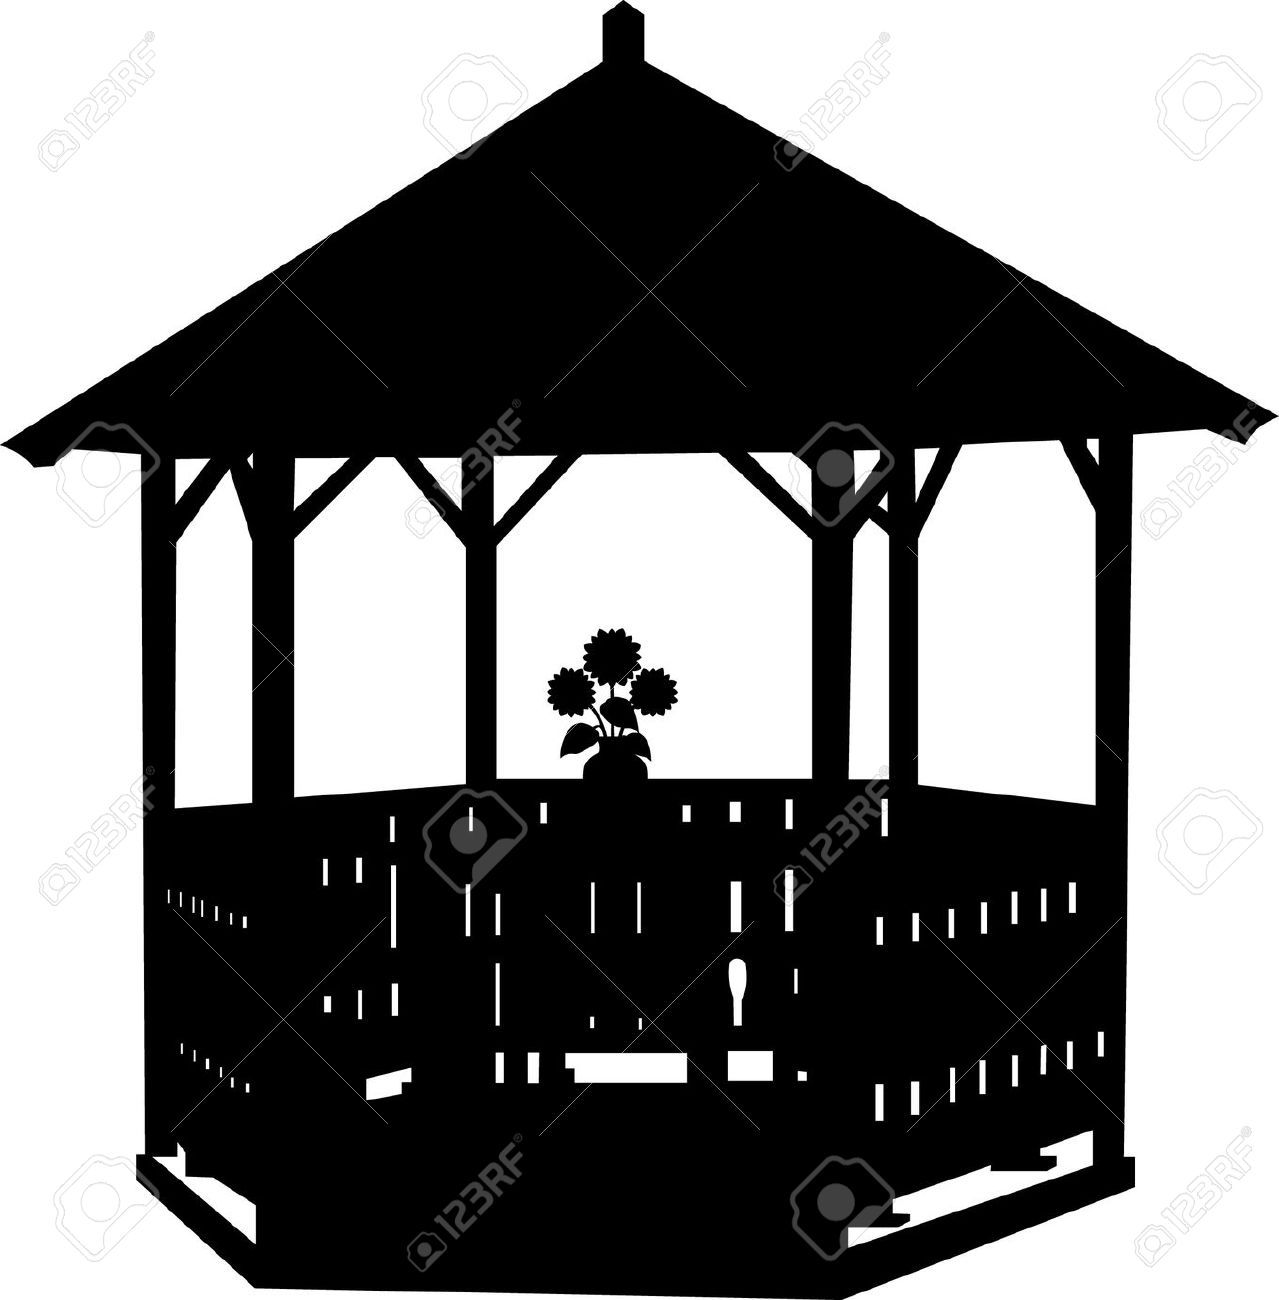 Gazebo clipart 20 free Cliparts  Download images on Clipground 2019